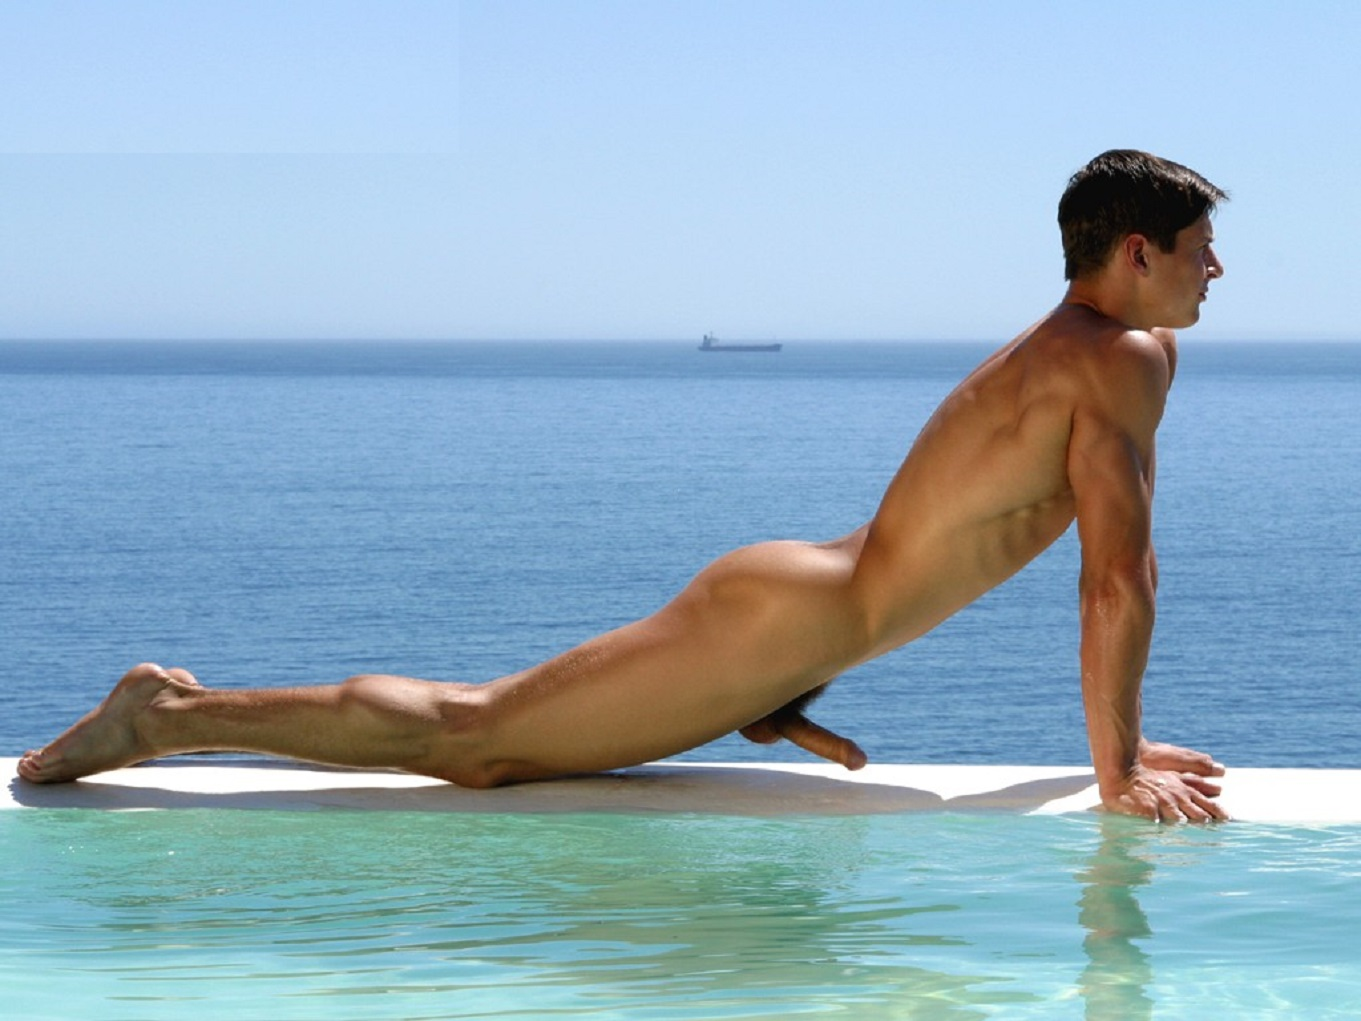 Naked hairy man outdoor in a pool villa jerking off